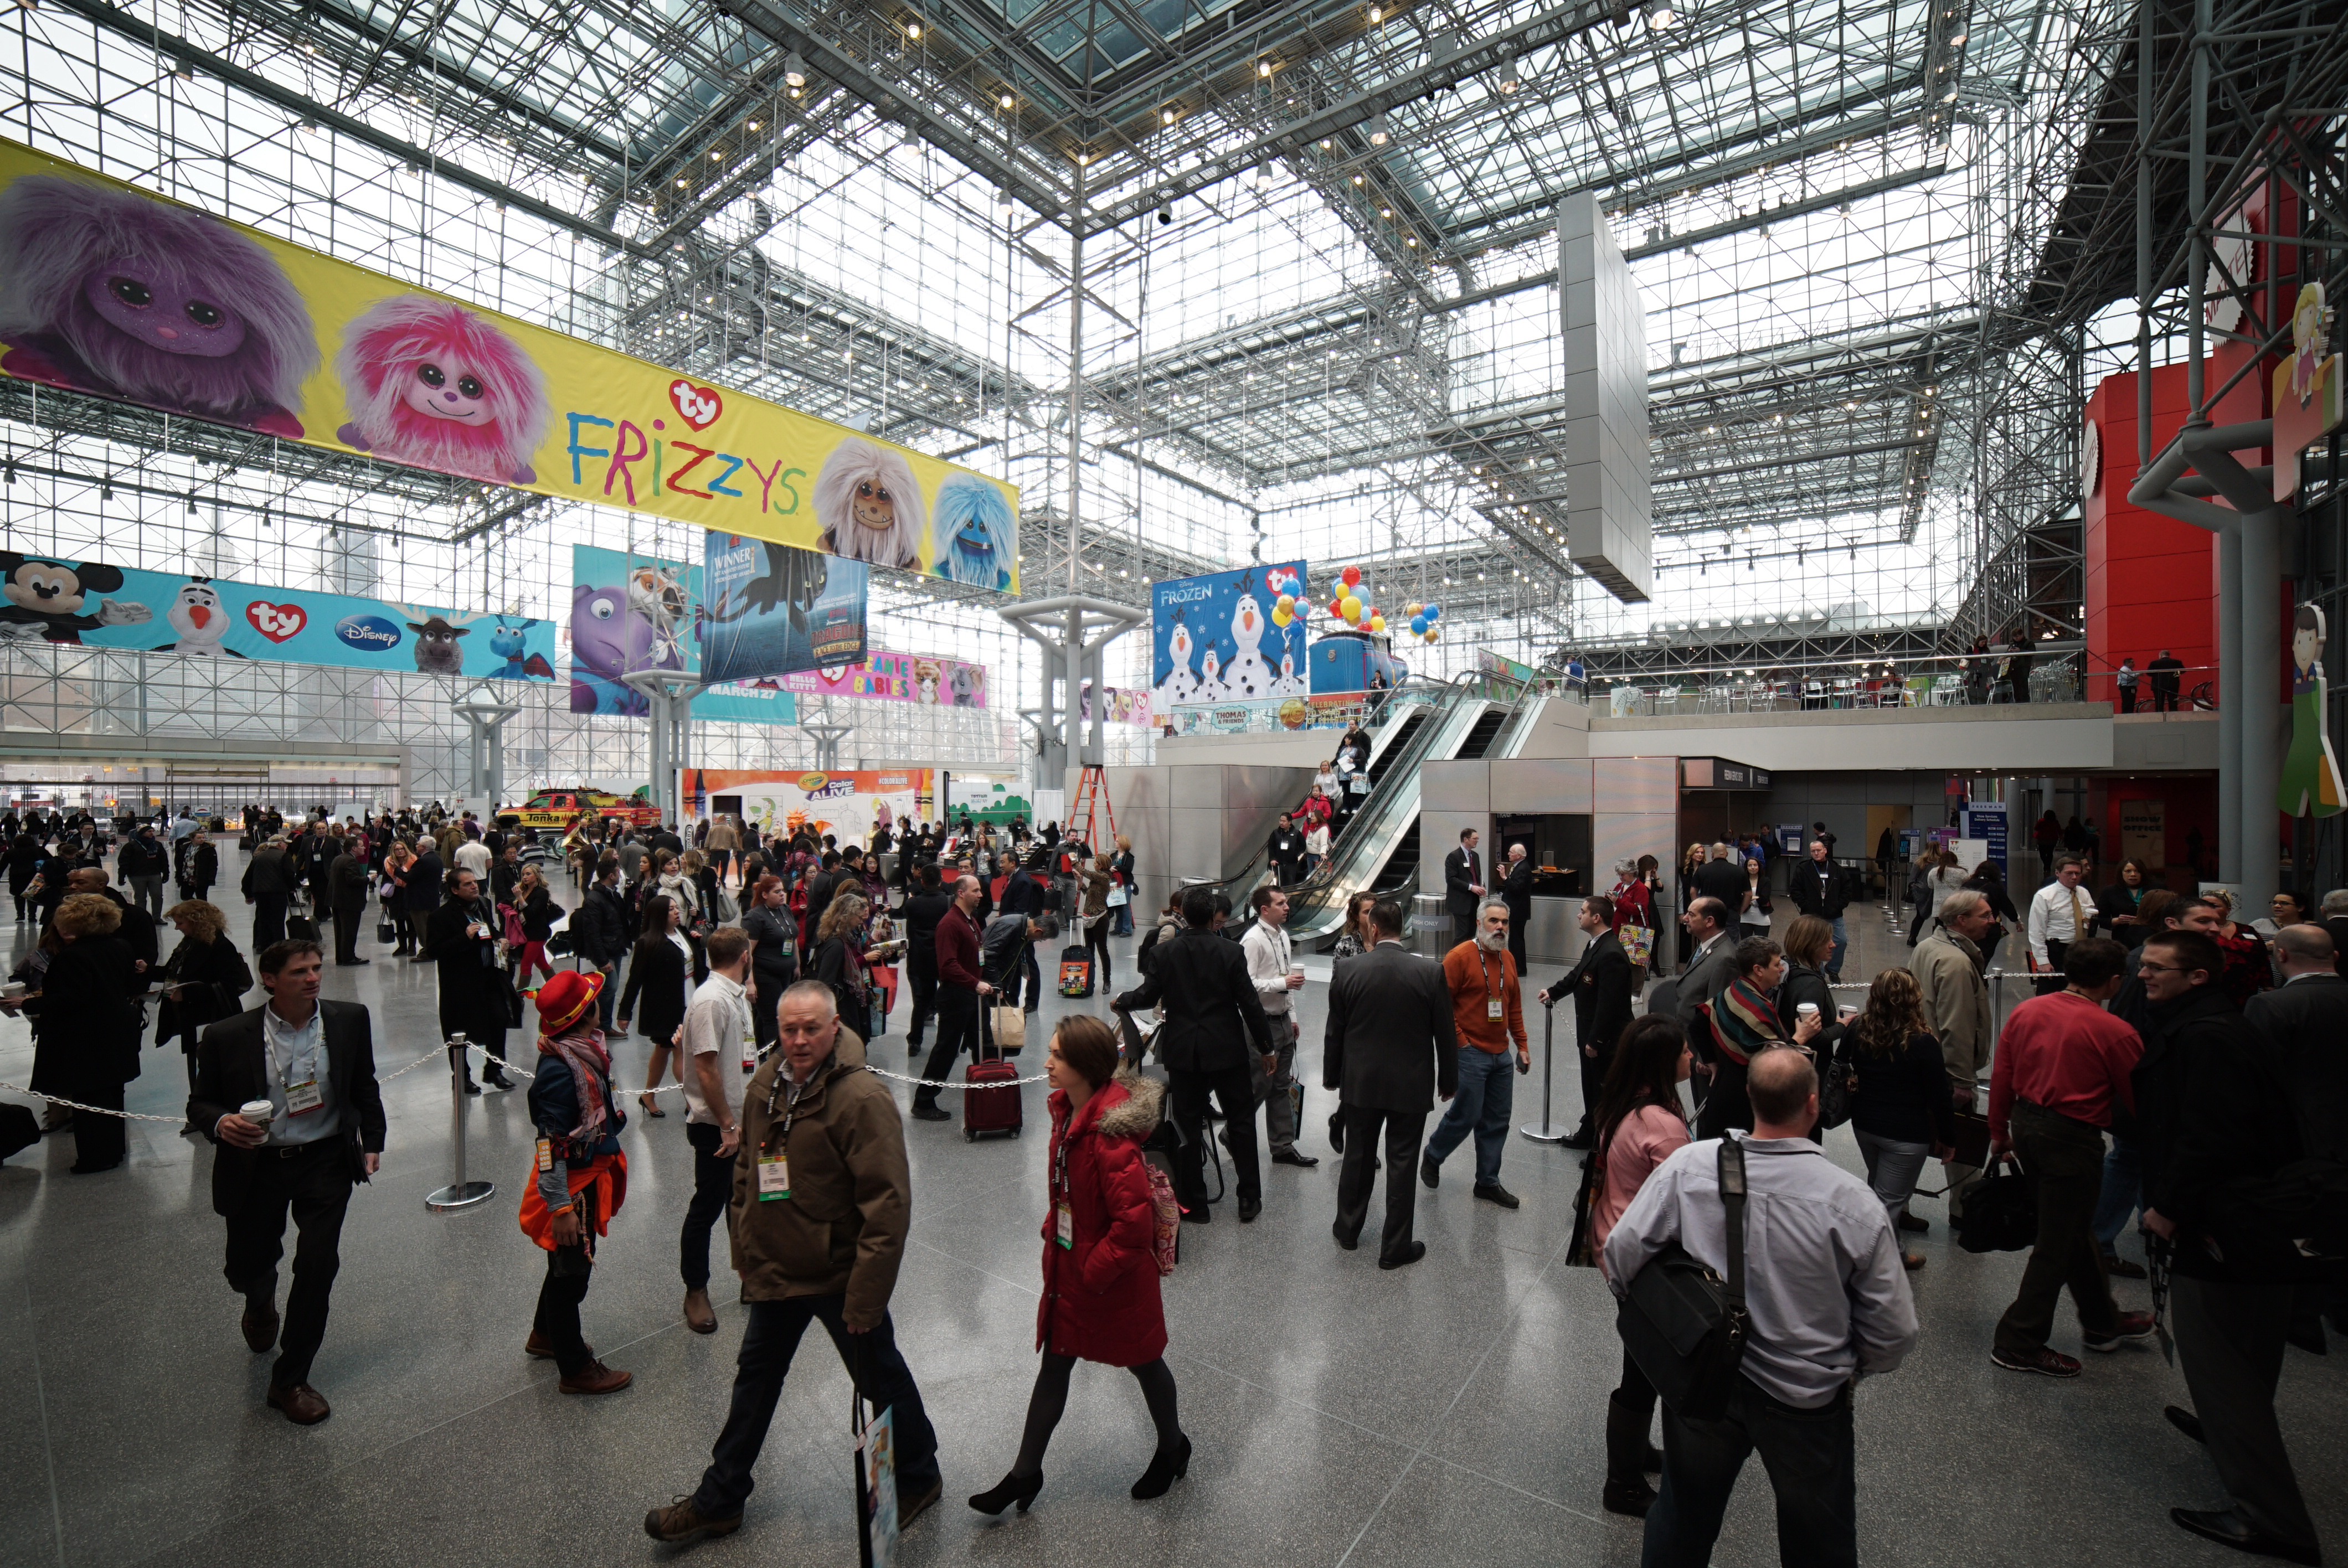 New York's Toy Fair has traditionally been an adult-only event. But for 2016, organizers are adding an event for kids and their families.